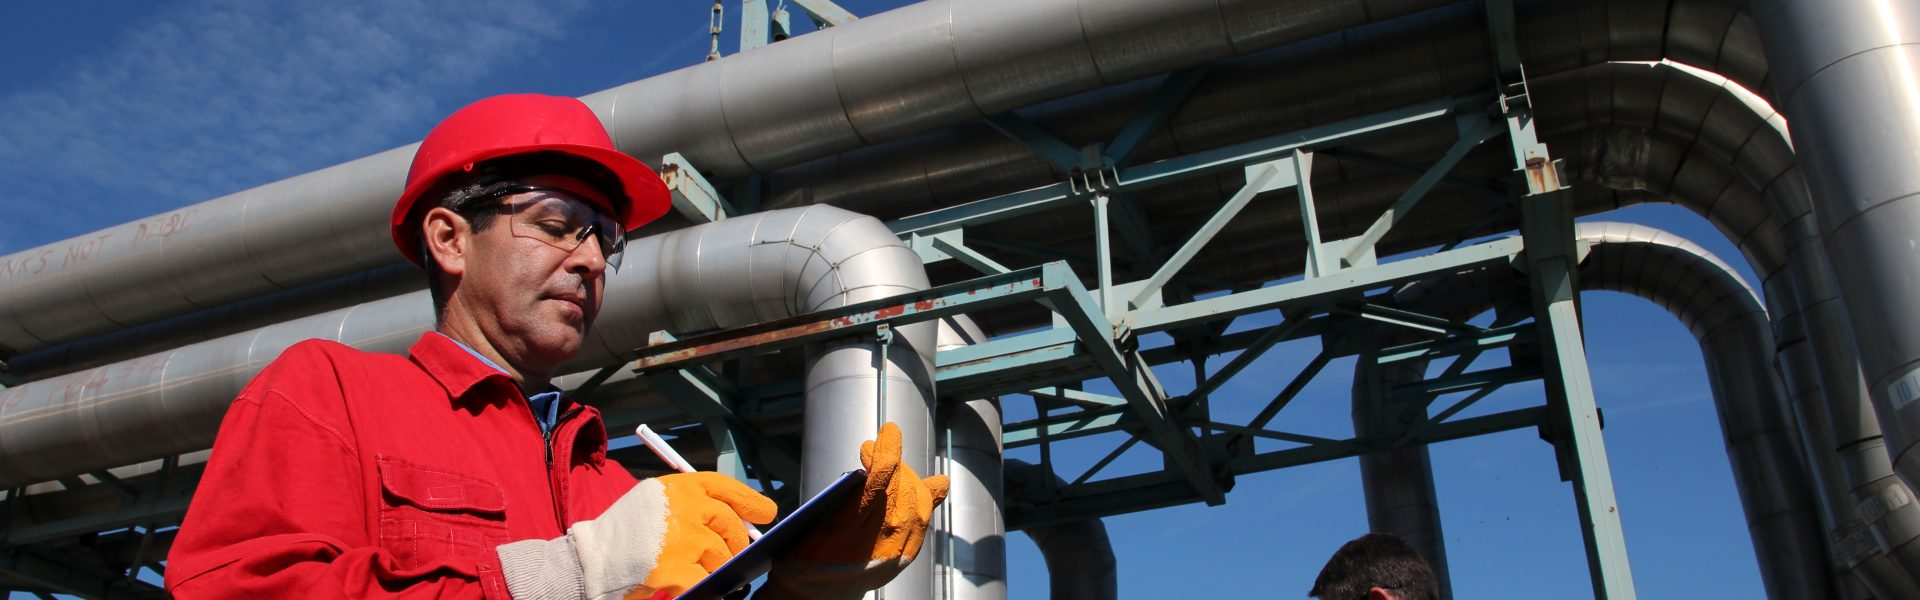 Plant and Safety Engineering Careers